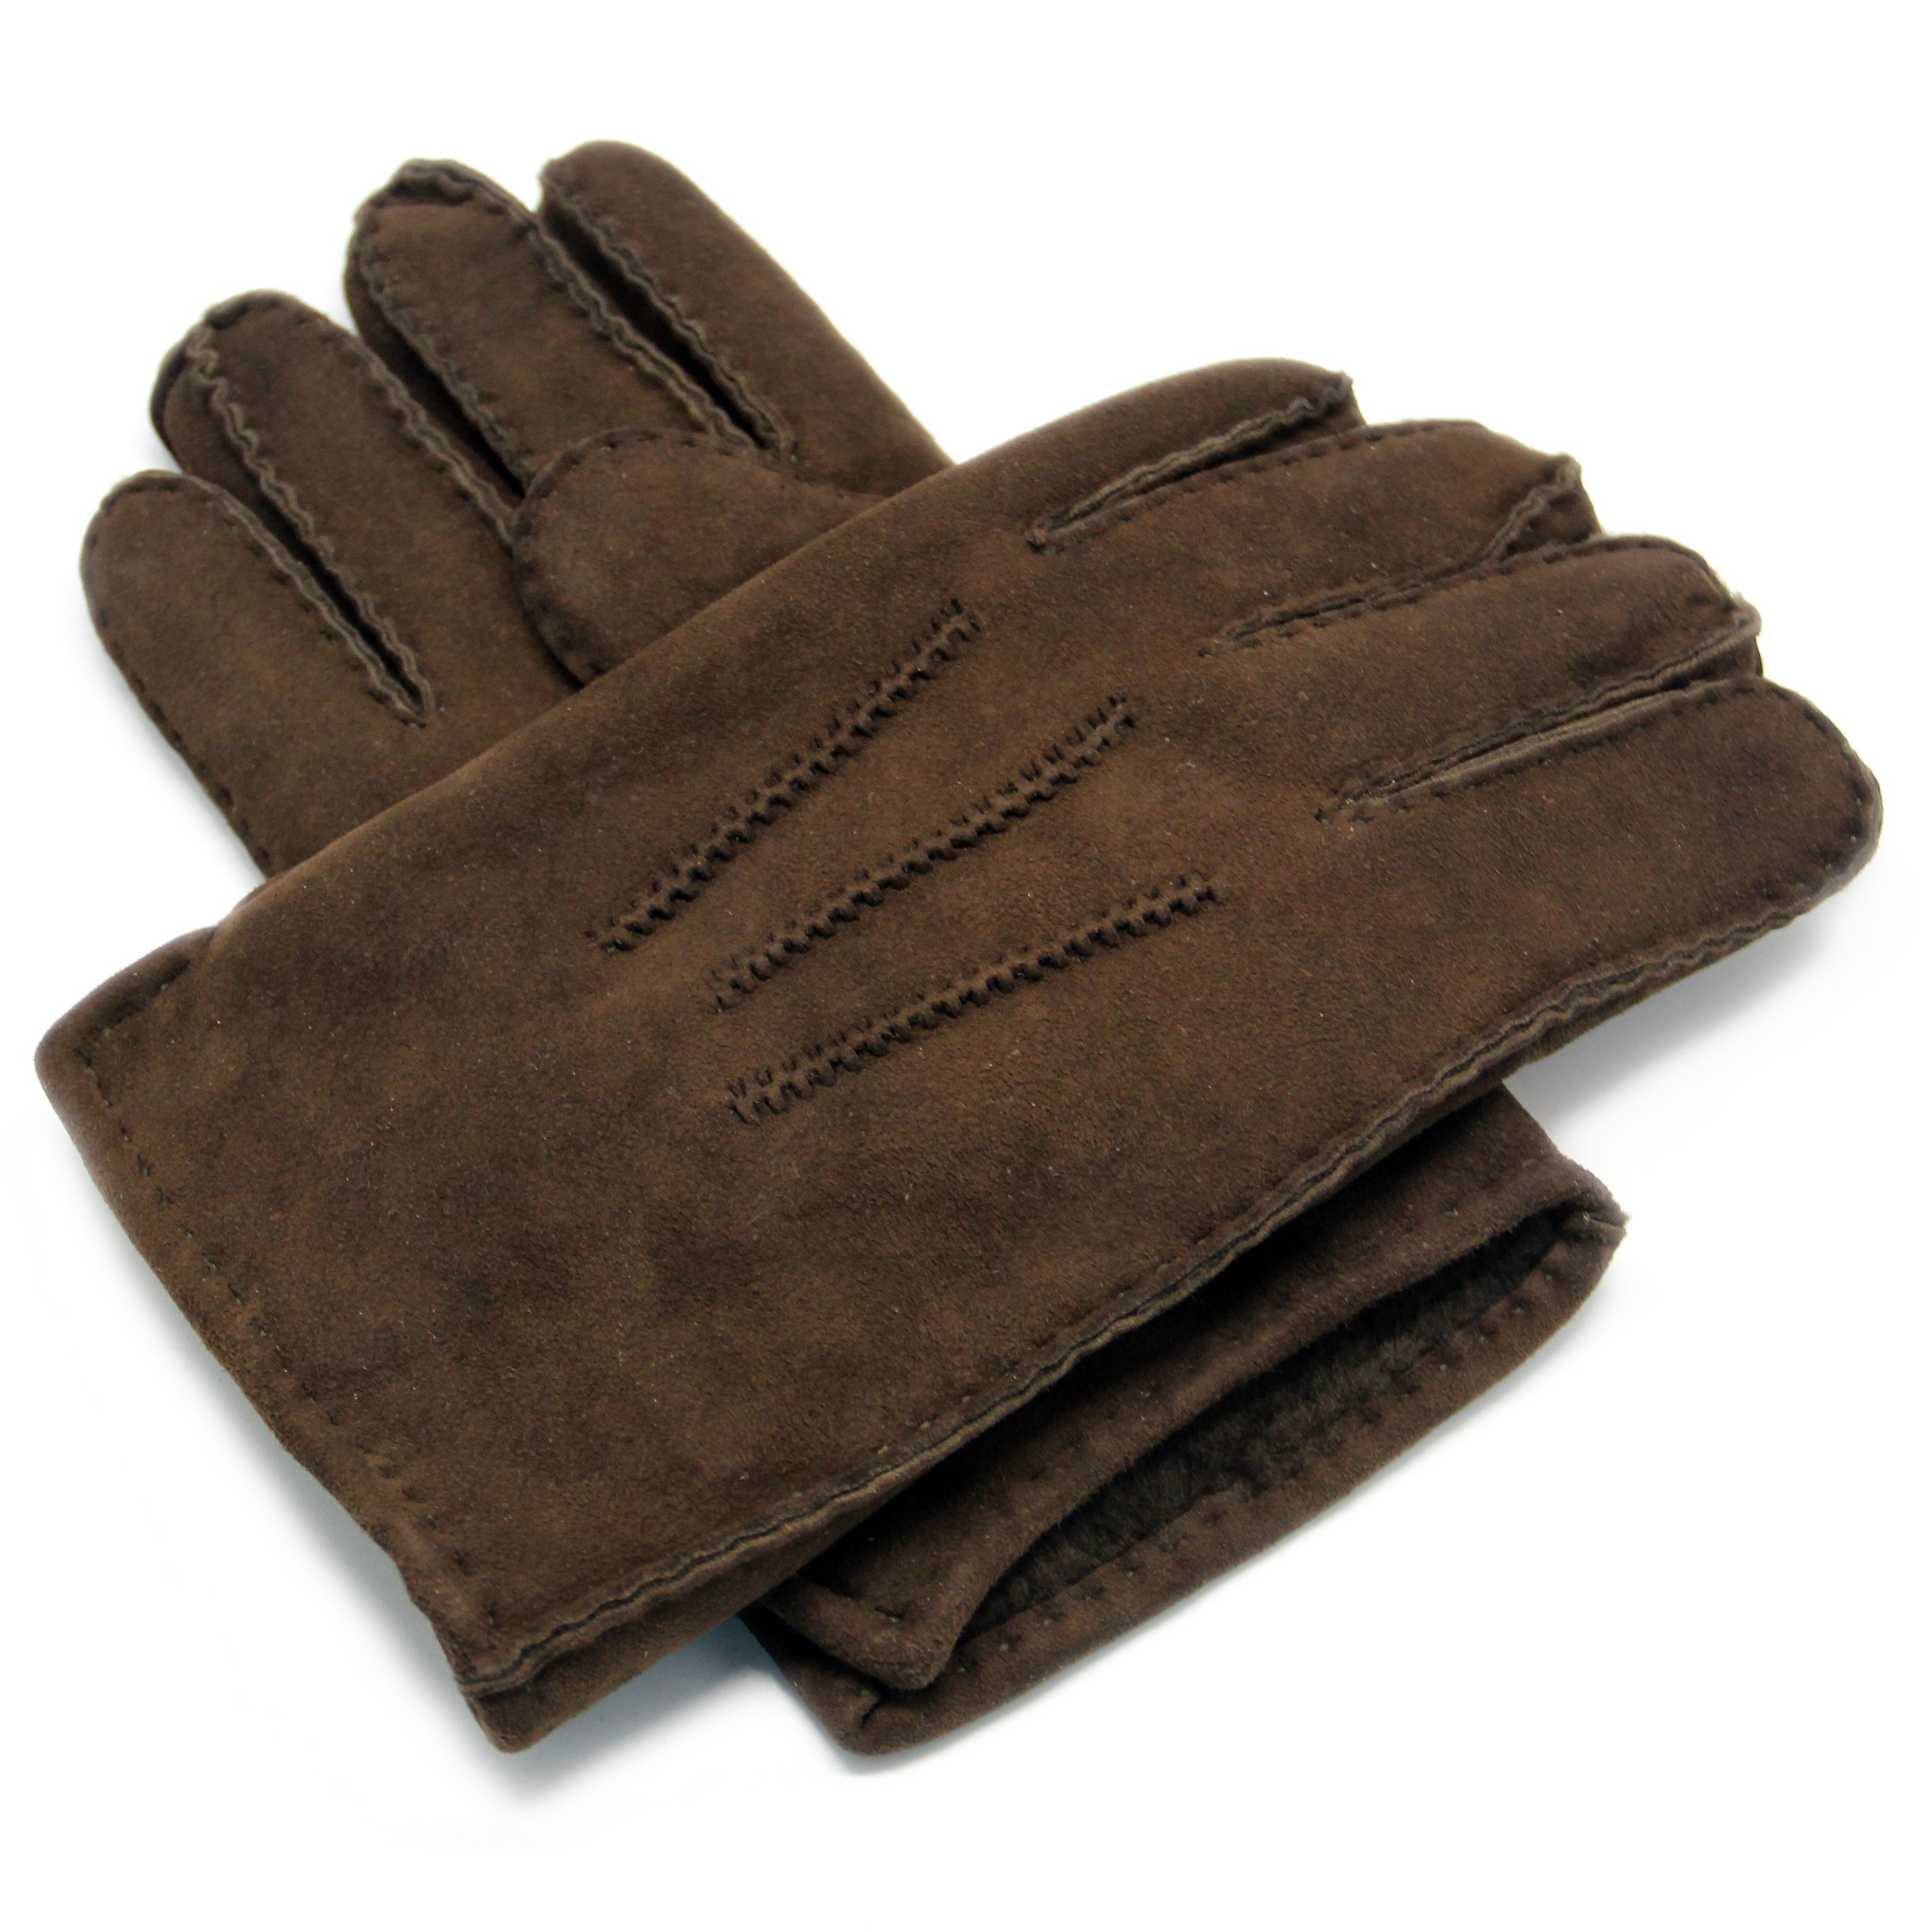 YISEVEN Men's Merino Rugged sheepskin Shearling Leather Gloves Three Points Short Cuffs Soft Thick Furry Fur Lined Warm Heated Lining Cuffs Winter Dress Driving Work Gifts, Dark Brown X-Large